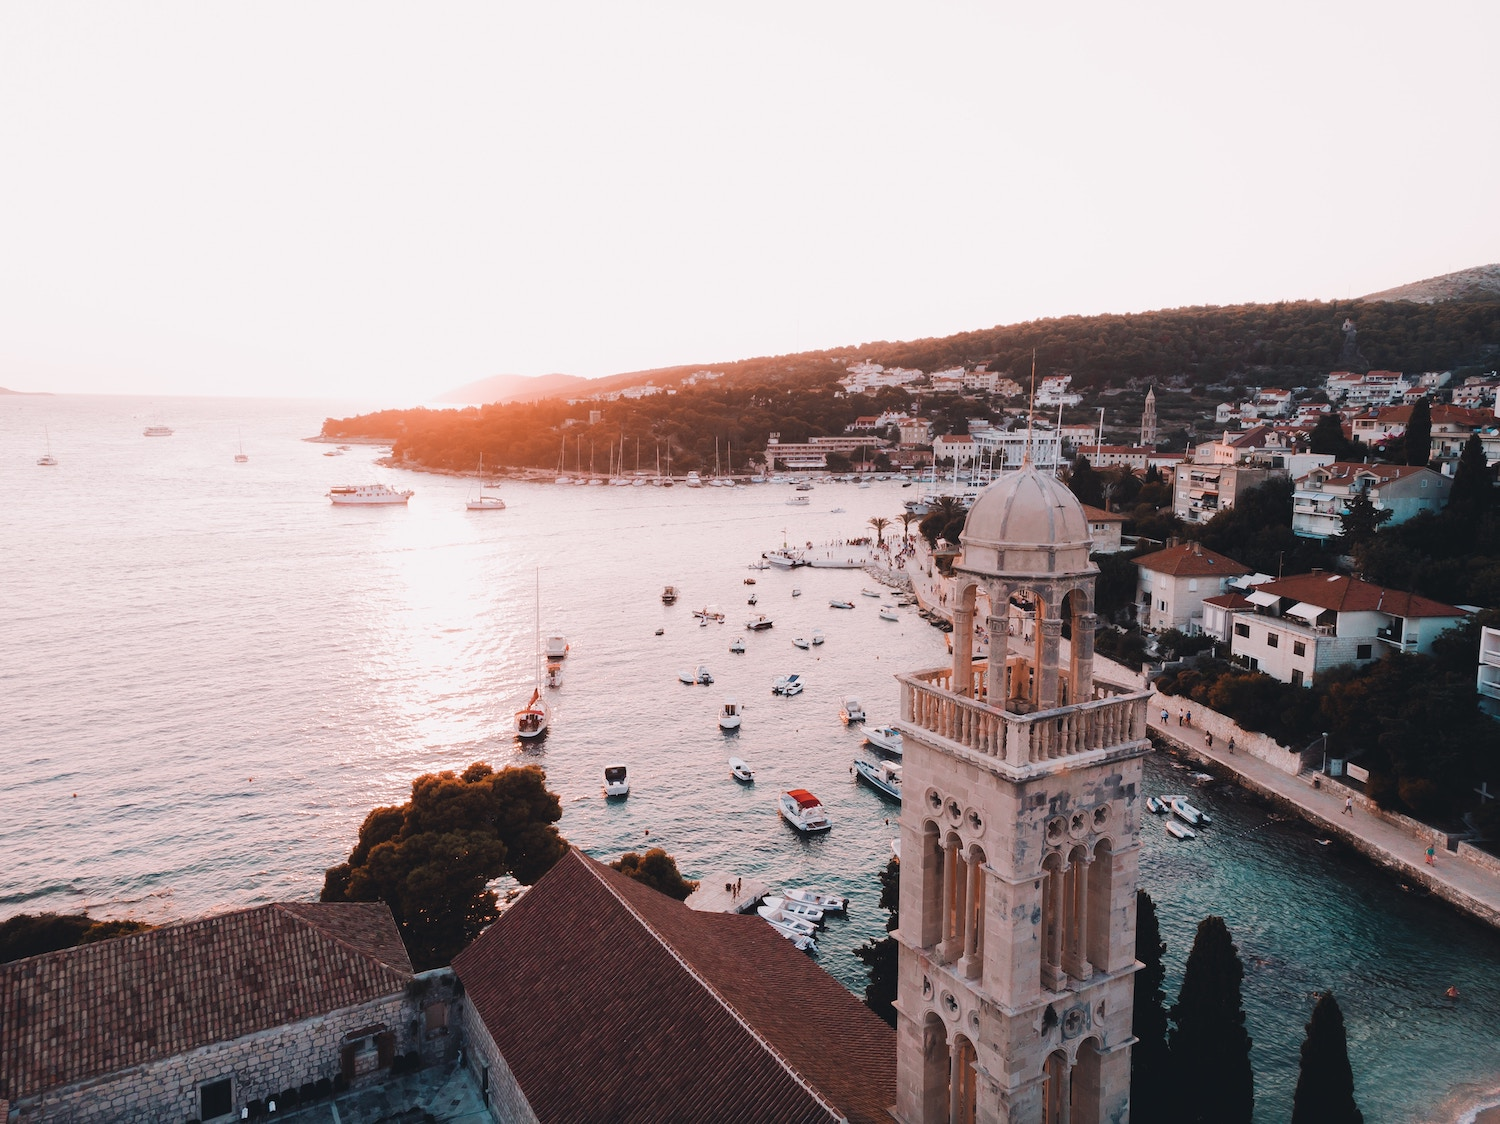 sunset over a party islands in croatia